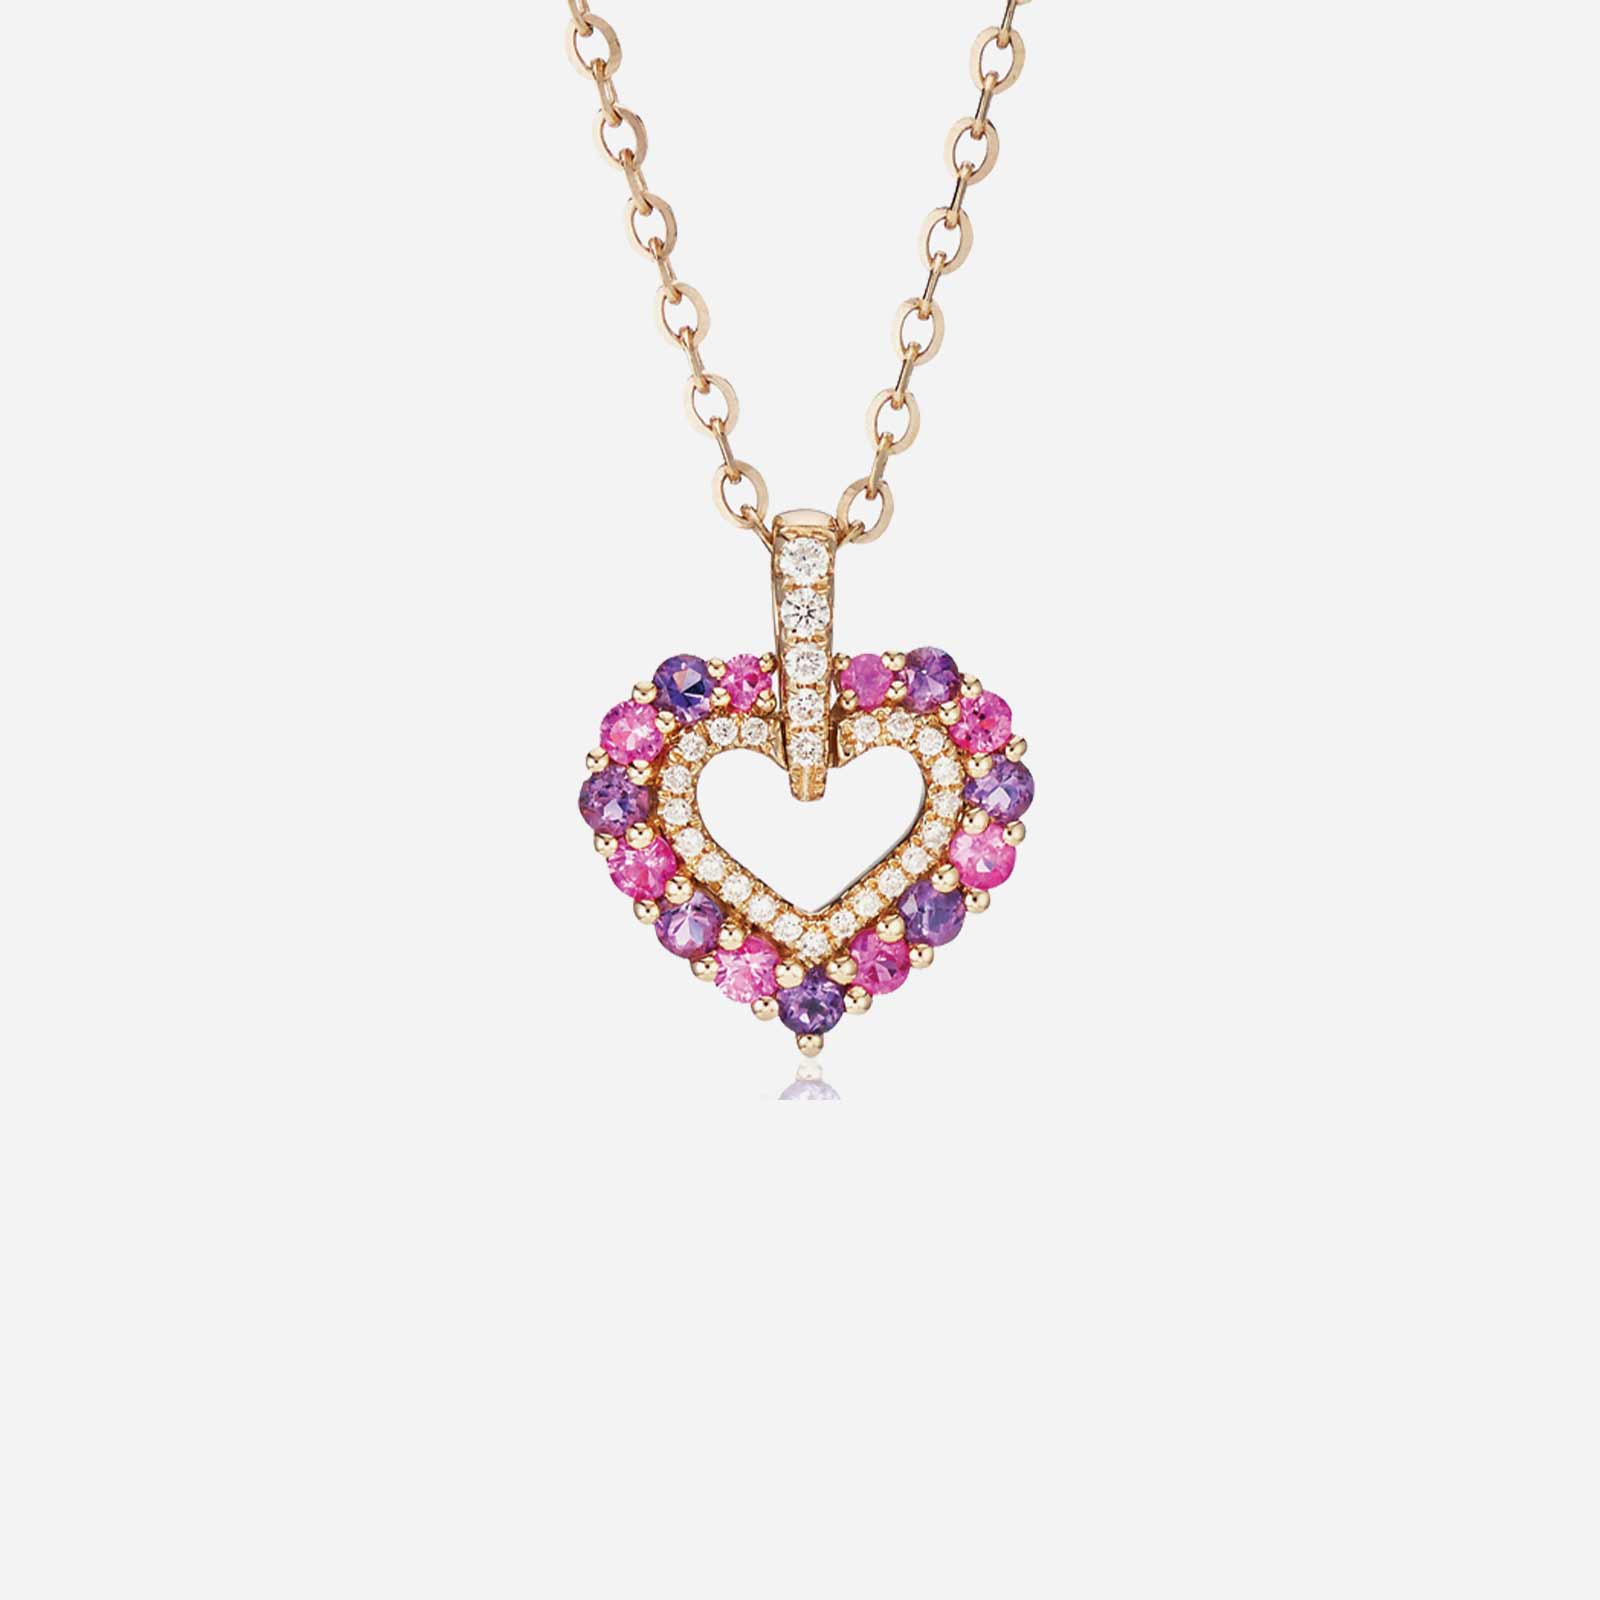 The Heart Of Intuition Pendant